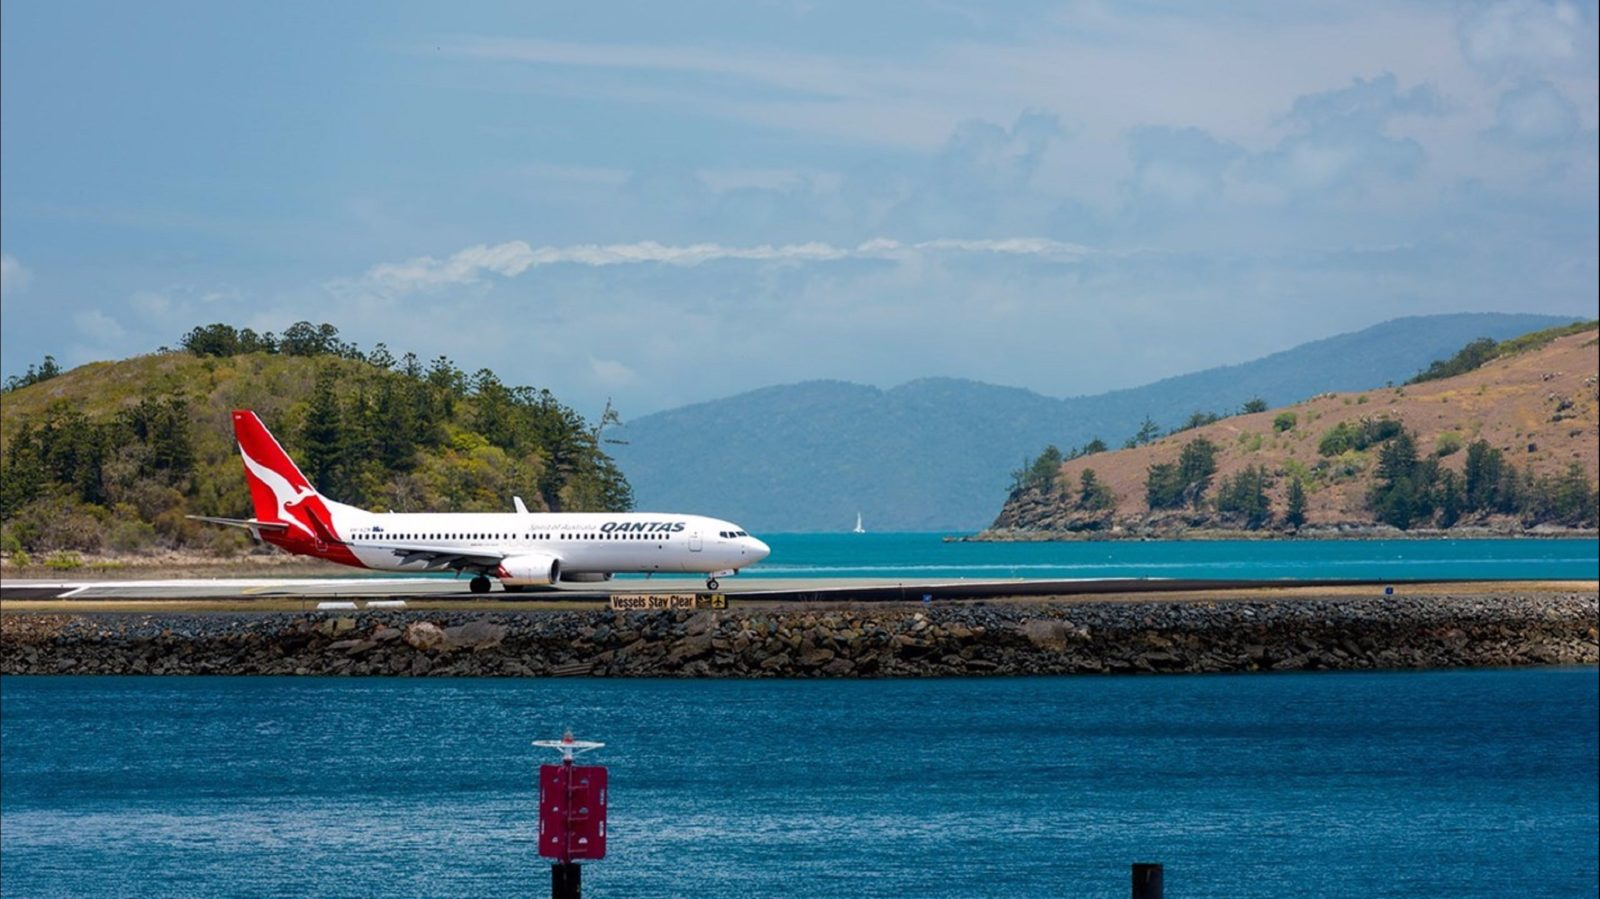 Great Barrier Reef Airport - Hamilton Island